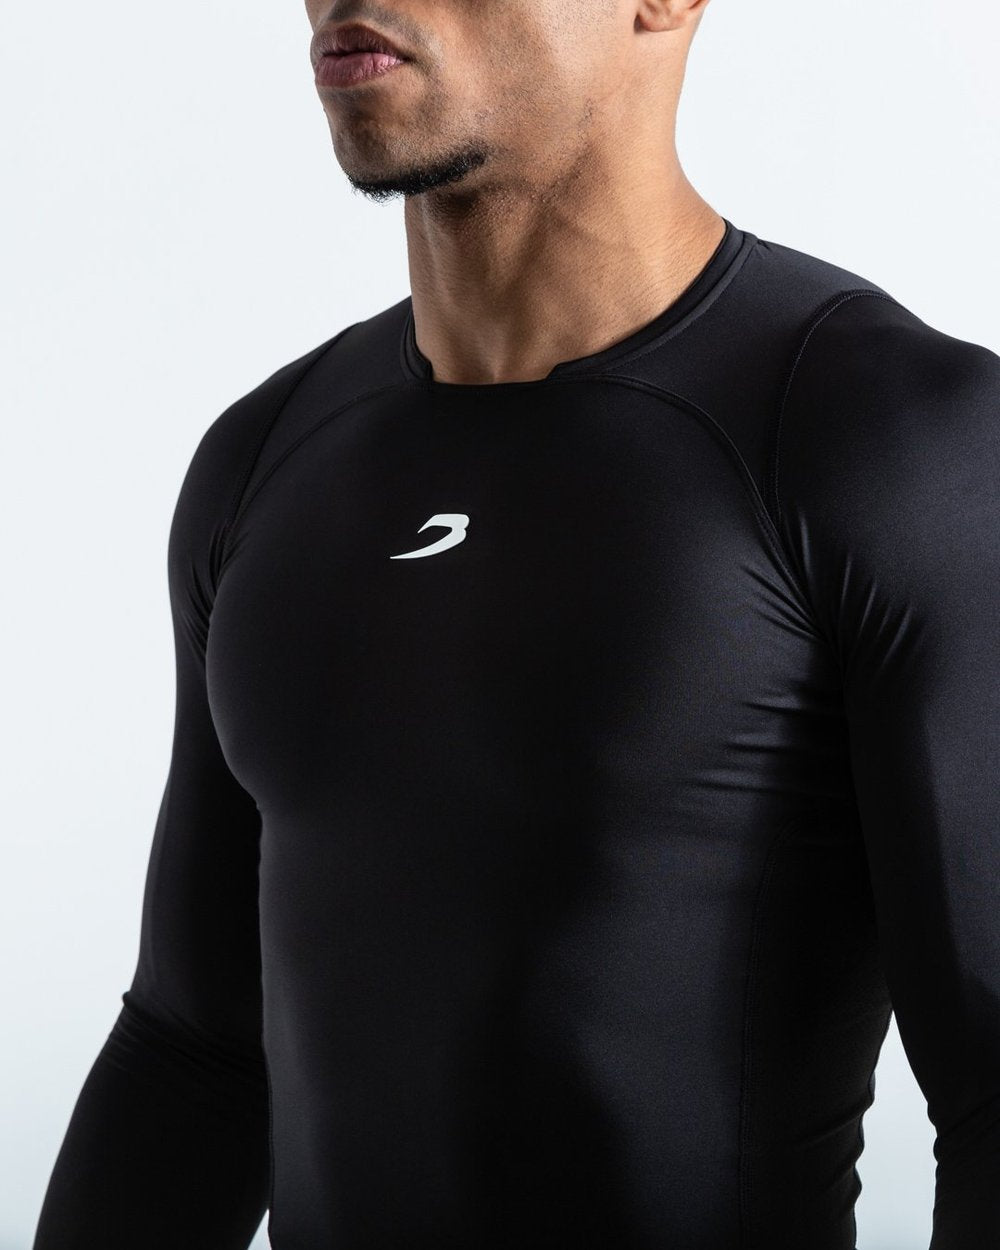 SADDLER COMPRESSION TOP - Pandemic Fight Gear Inc.